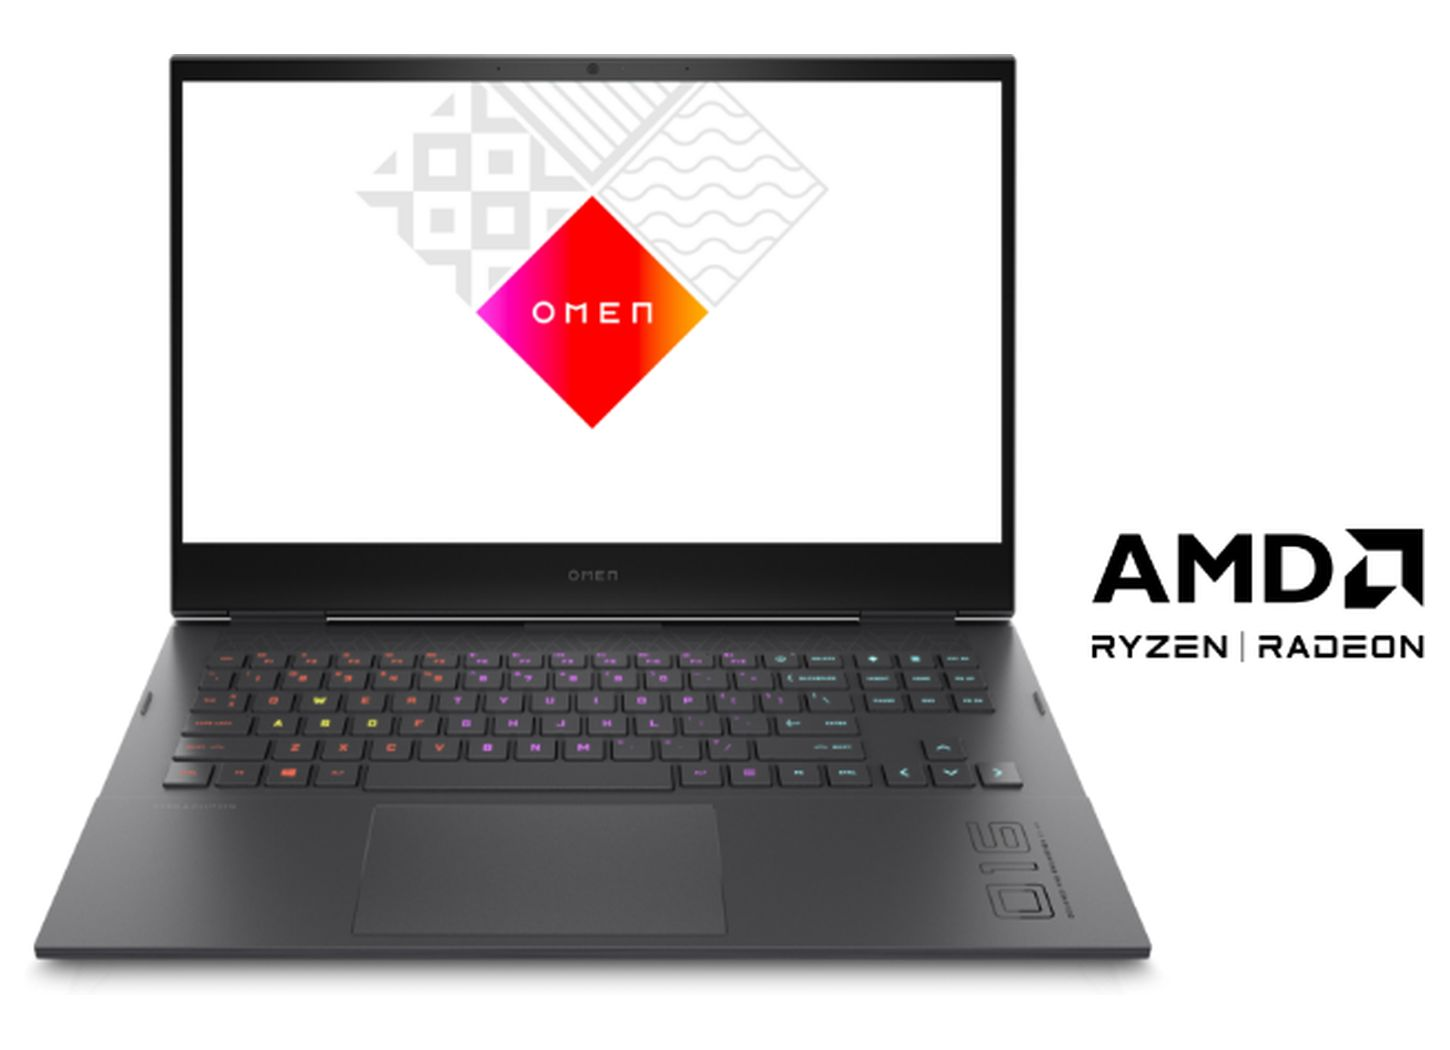 hp-unveils-the-omen-16-&-omen-17-gaming-laptops,-the-omen-16-is-the-first-laptop-with-amd-radeon-rx-6000m-graphics